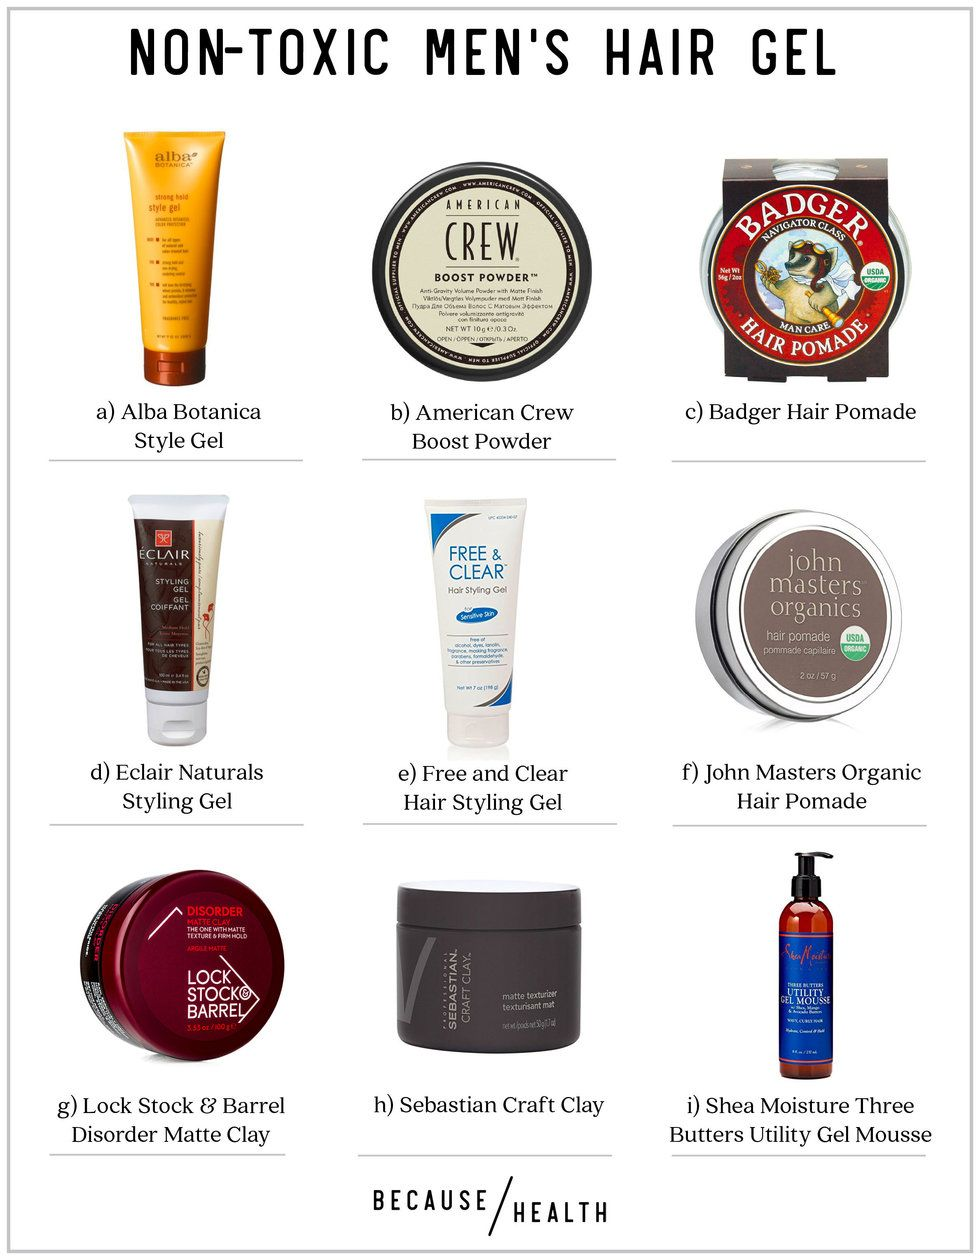 9 Non-Toxic Men's Hair Gel Options - Because Health